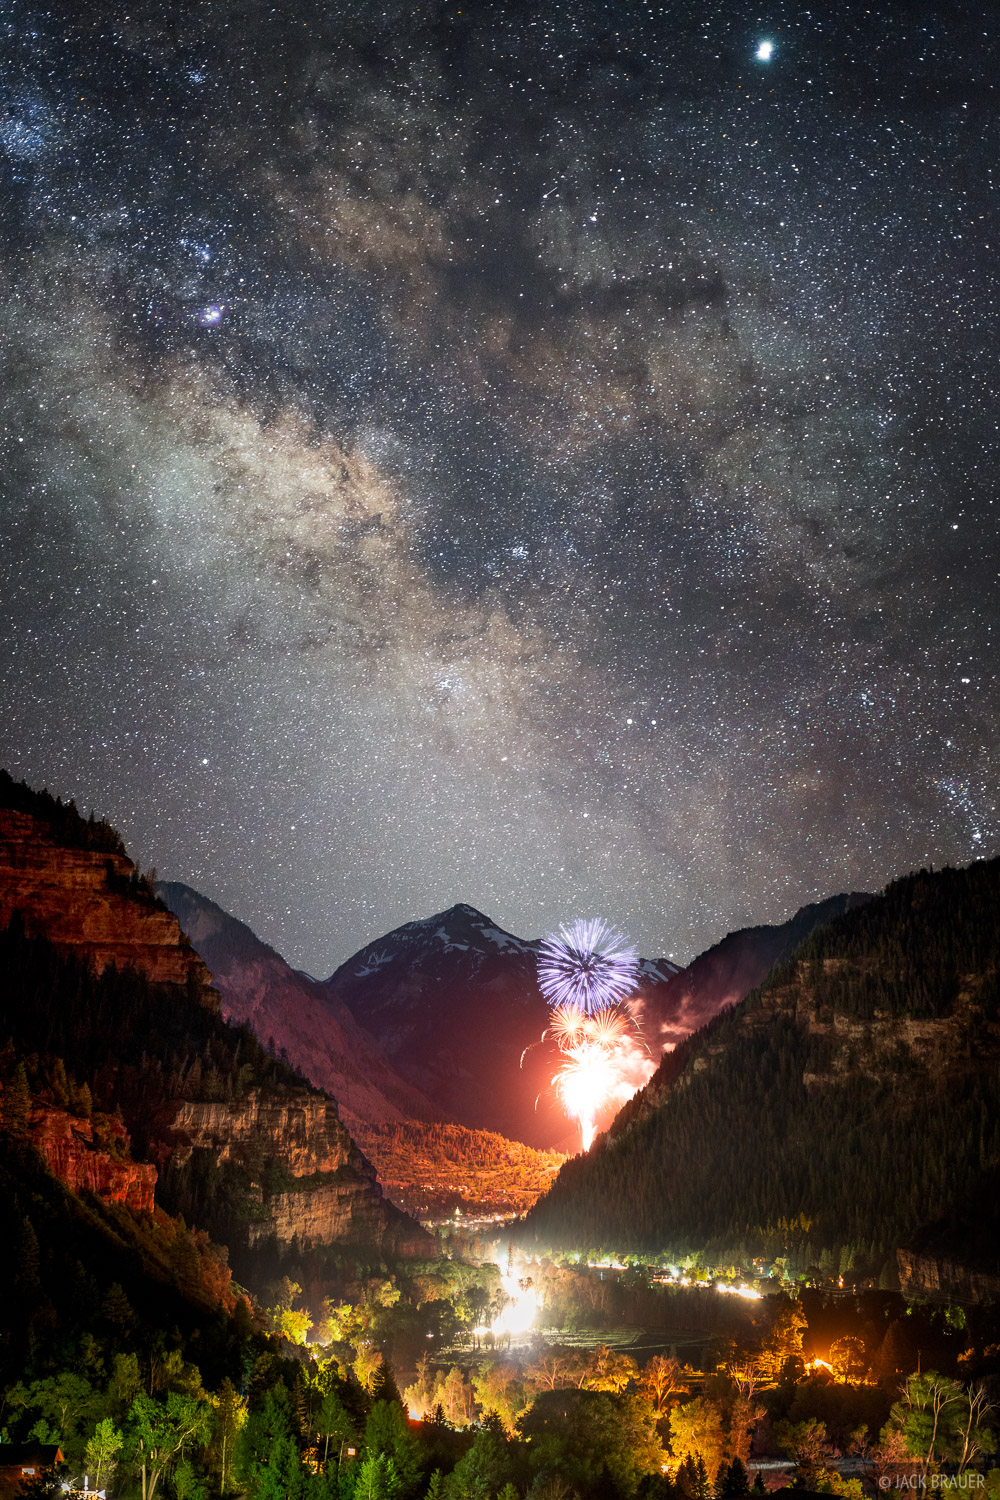 4th of July, Colorado, Ouray, San Juan Mountains, fireworks, Milky Way